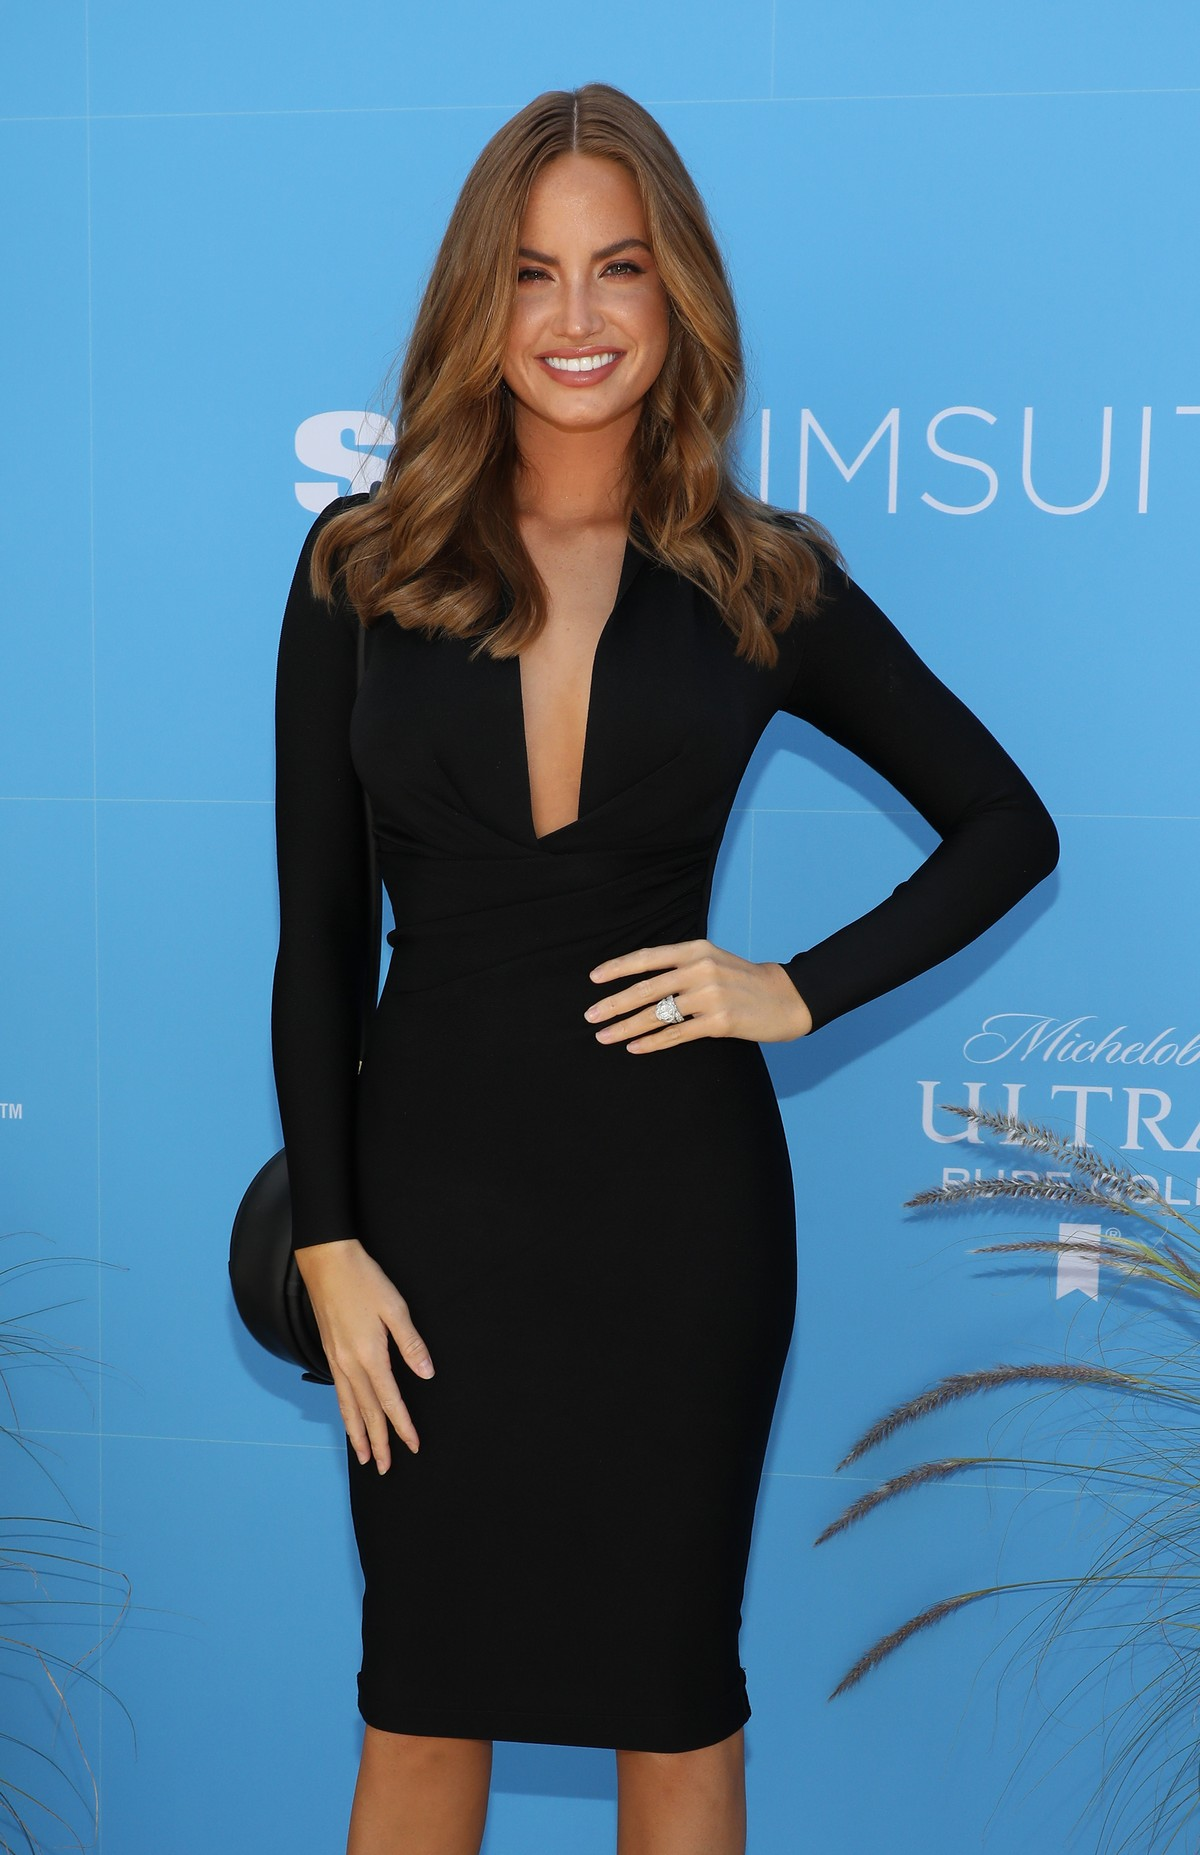 Haley Kalil at Sports Illustrated Swimsuit 2019 at Ice Palace in Miami 2019/05/10 10